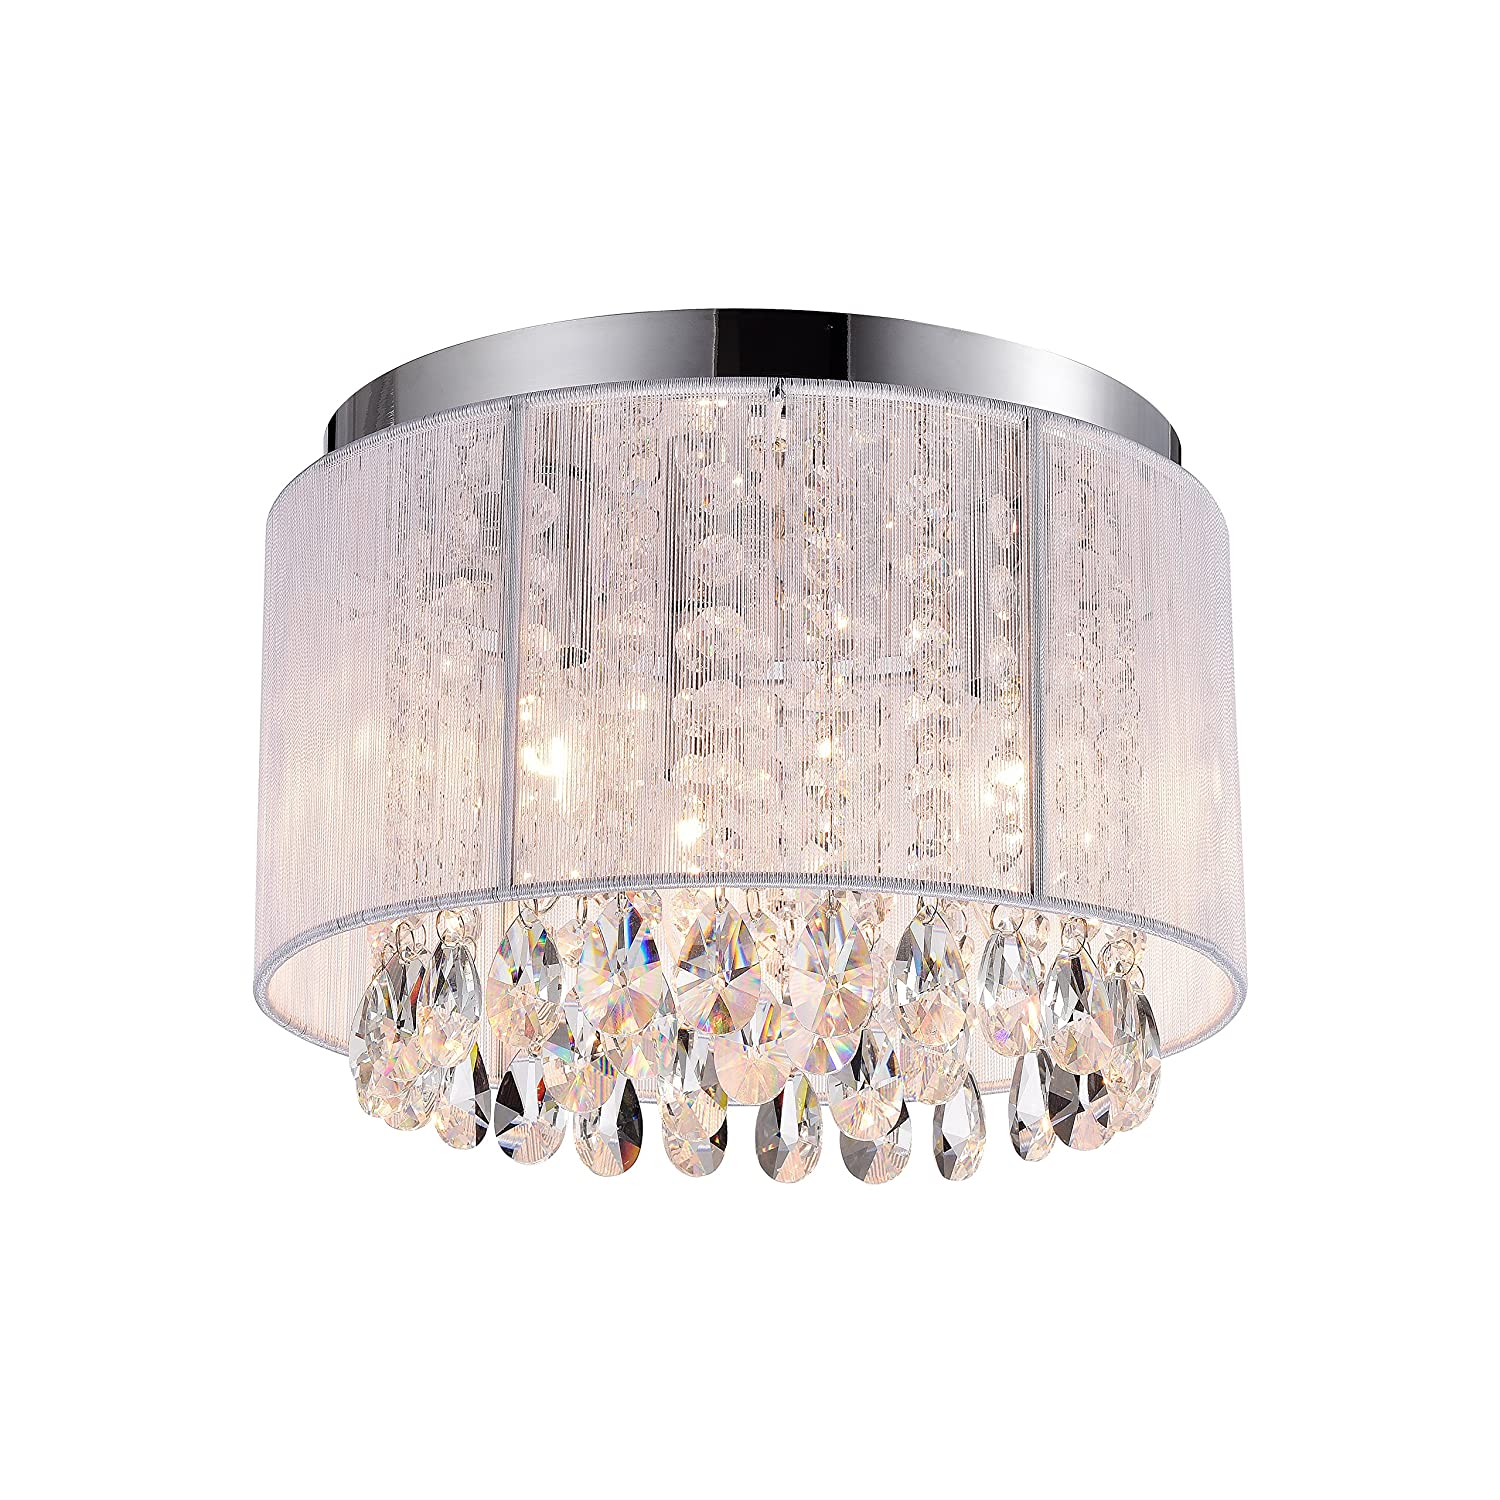 Chandeliers Crystal Ceiling Light Fixtures White Flush Mount Chandelier 3 Light Crystal Chandelier Lighting